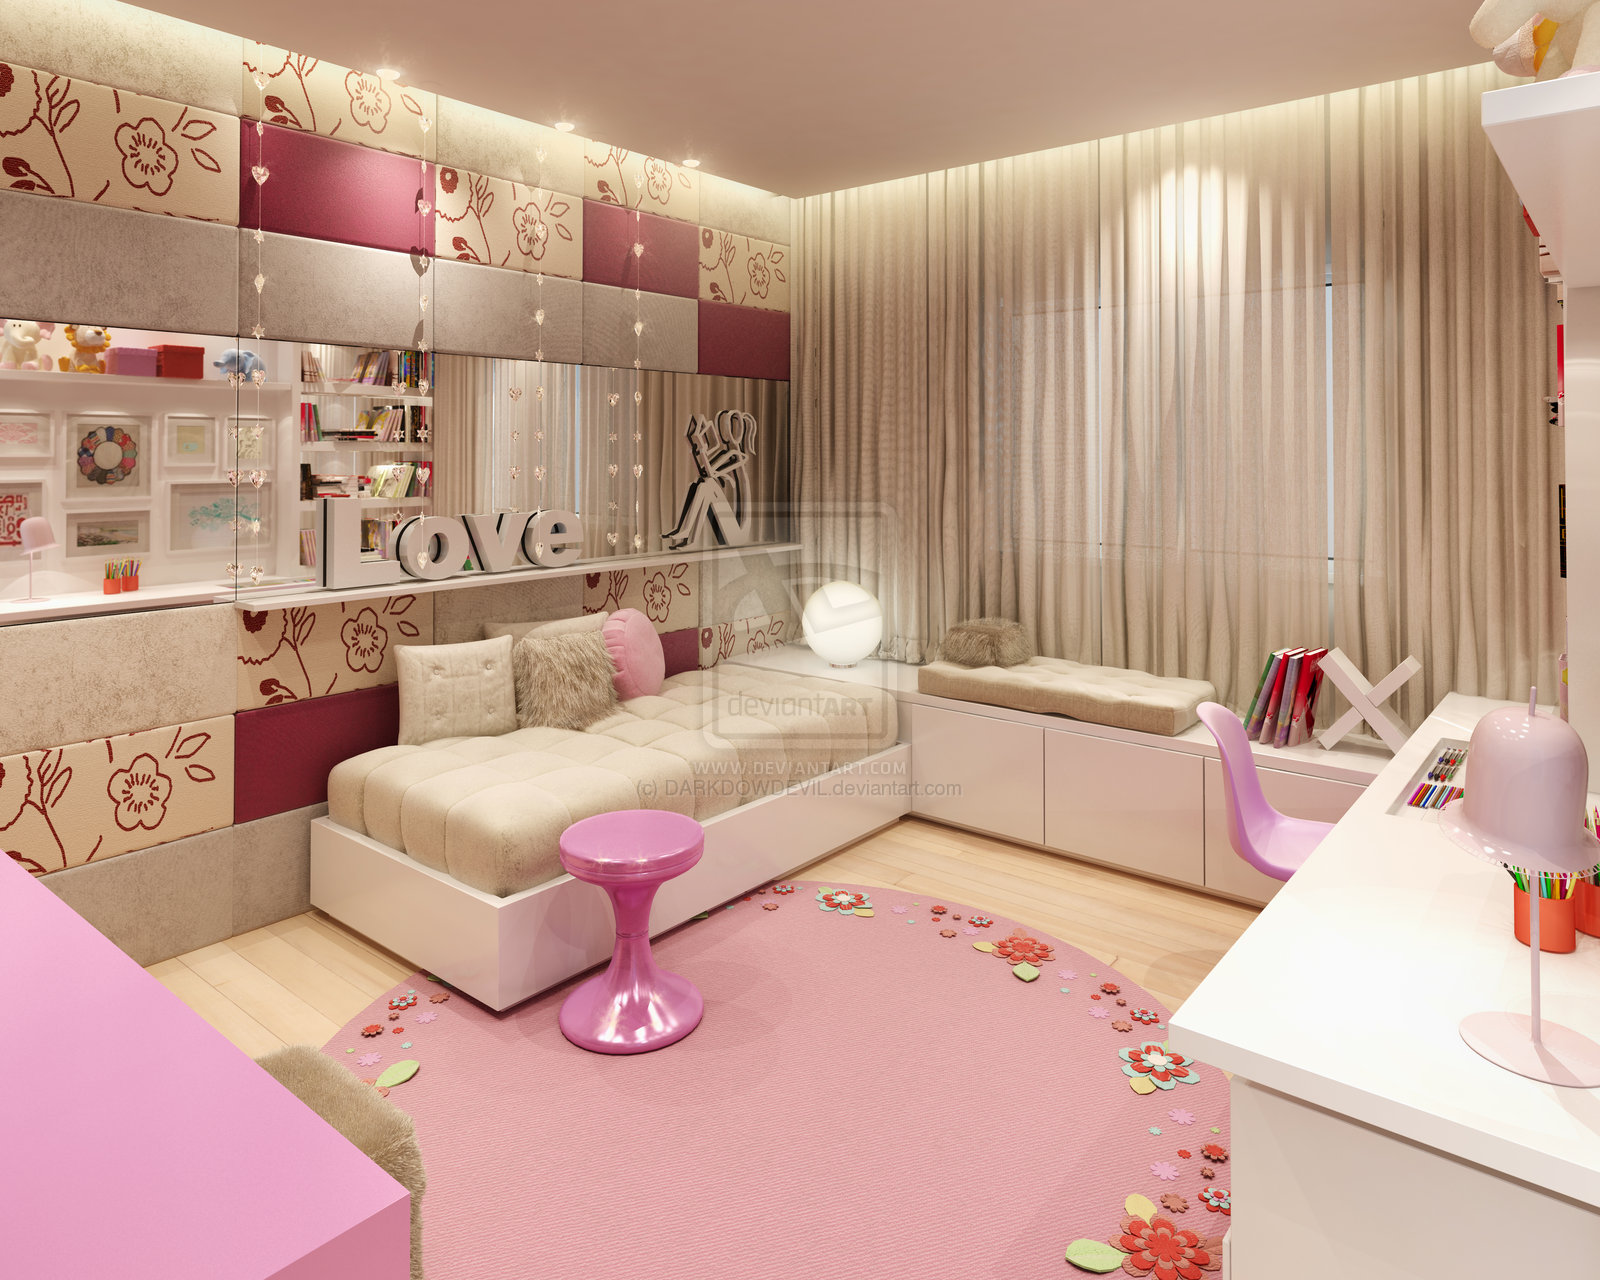 girl bedroom by DARKDOWDEVIL & Teenage Room Designs